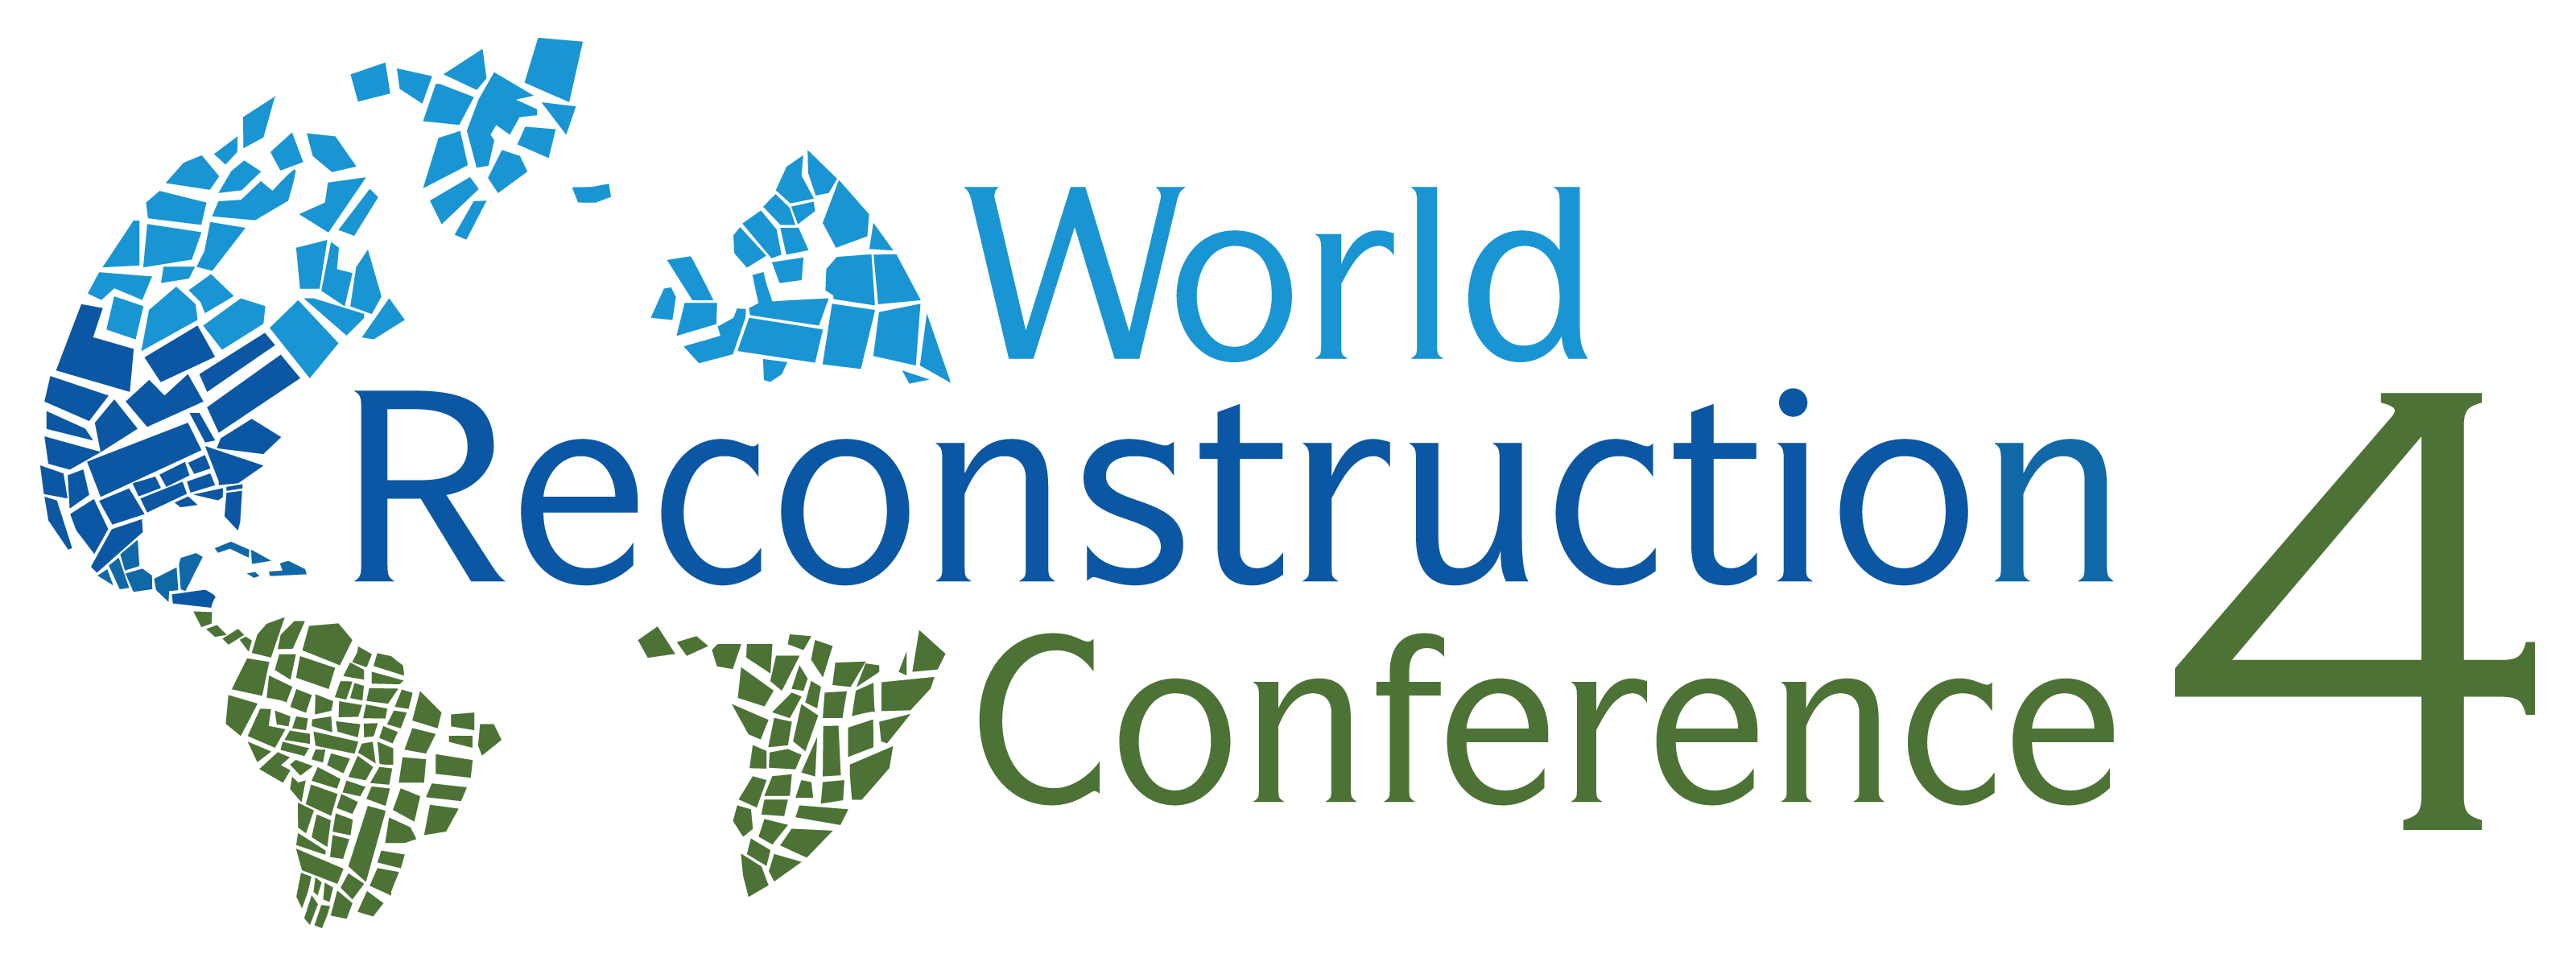 World Reconstruction Conference 4